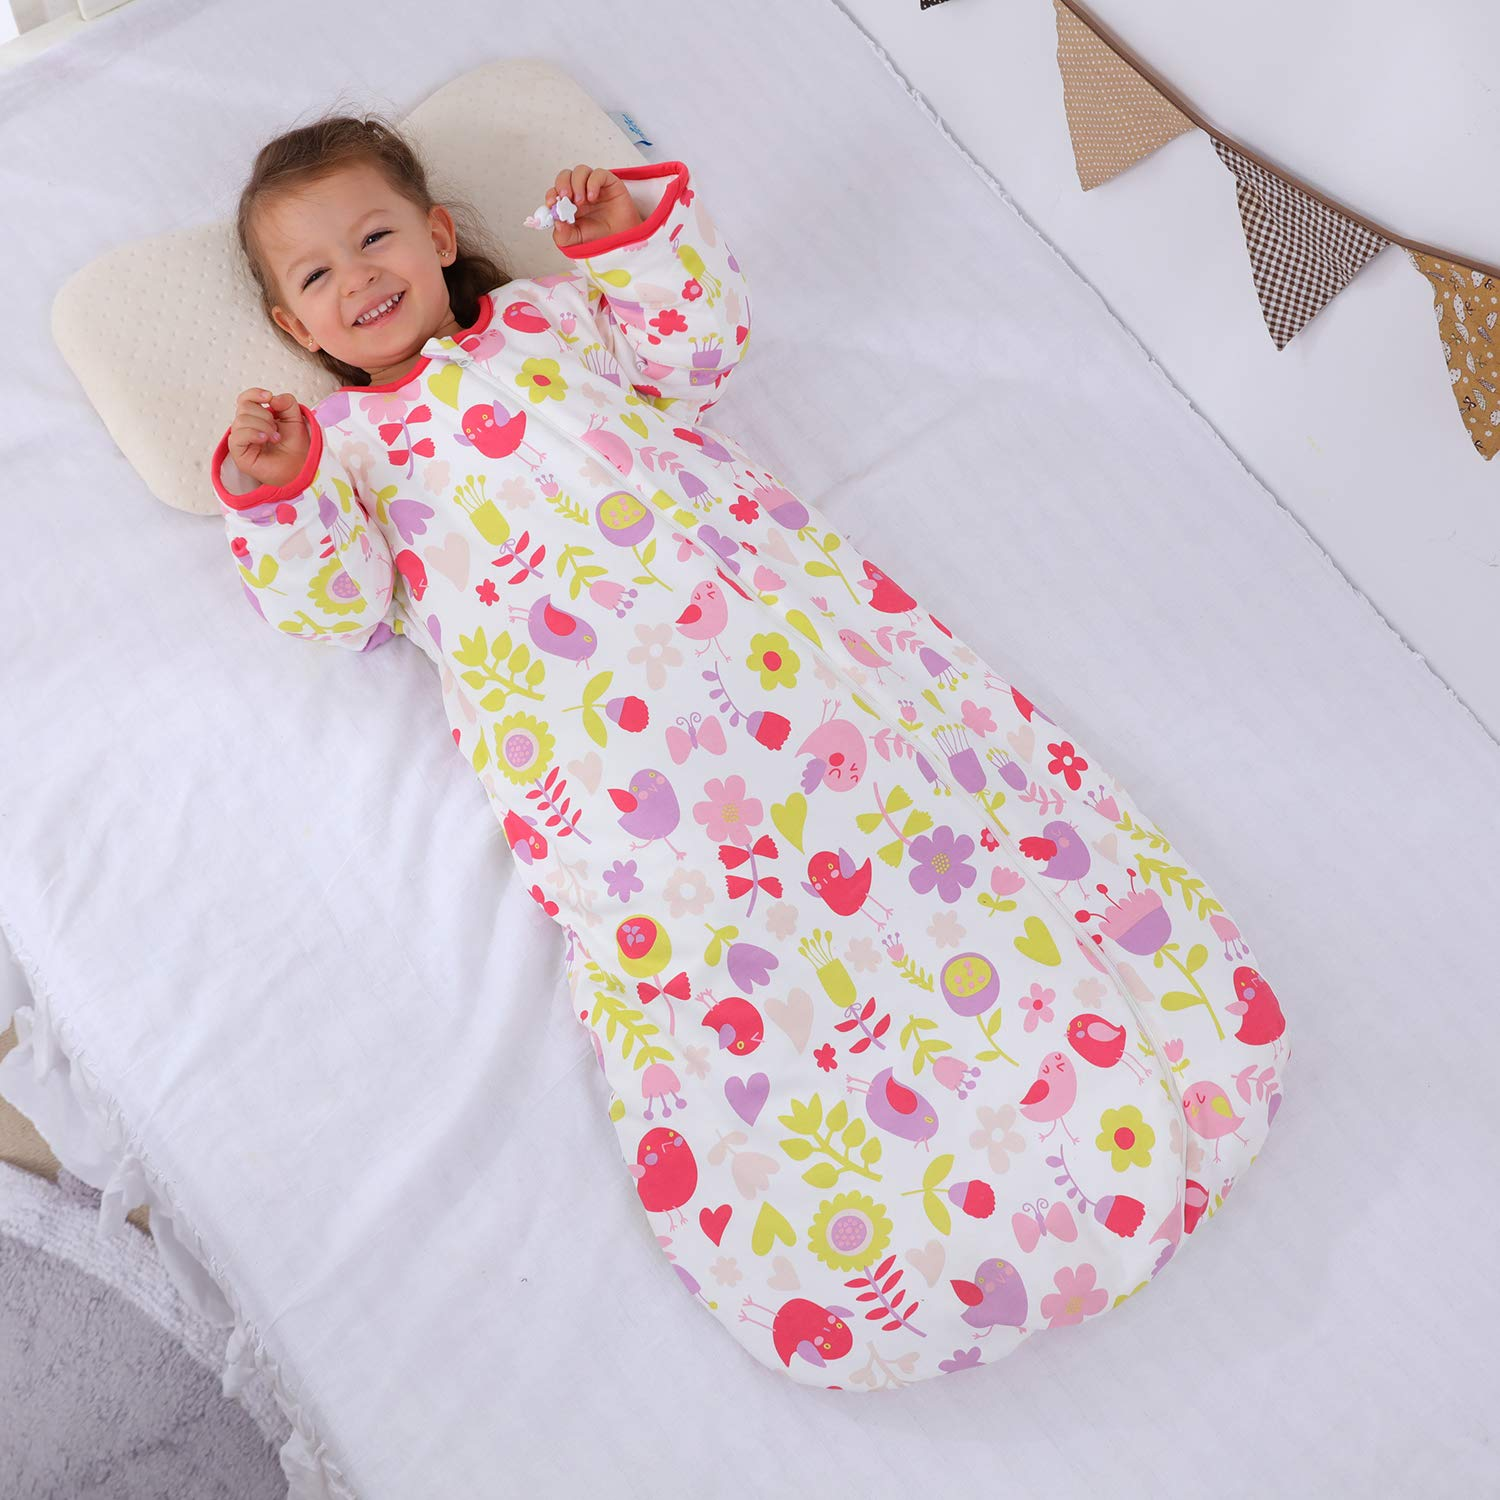 S//3-6 Months, GreenBear Baby Winter Sleeping Bag Kids Sleeping Bag 3.5 Tog Organic Cotton Sleeping Bag Various Sizes from Birth to 4 Years Old